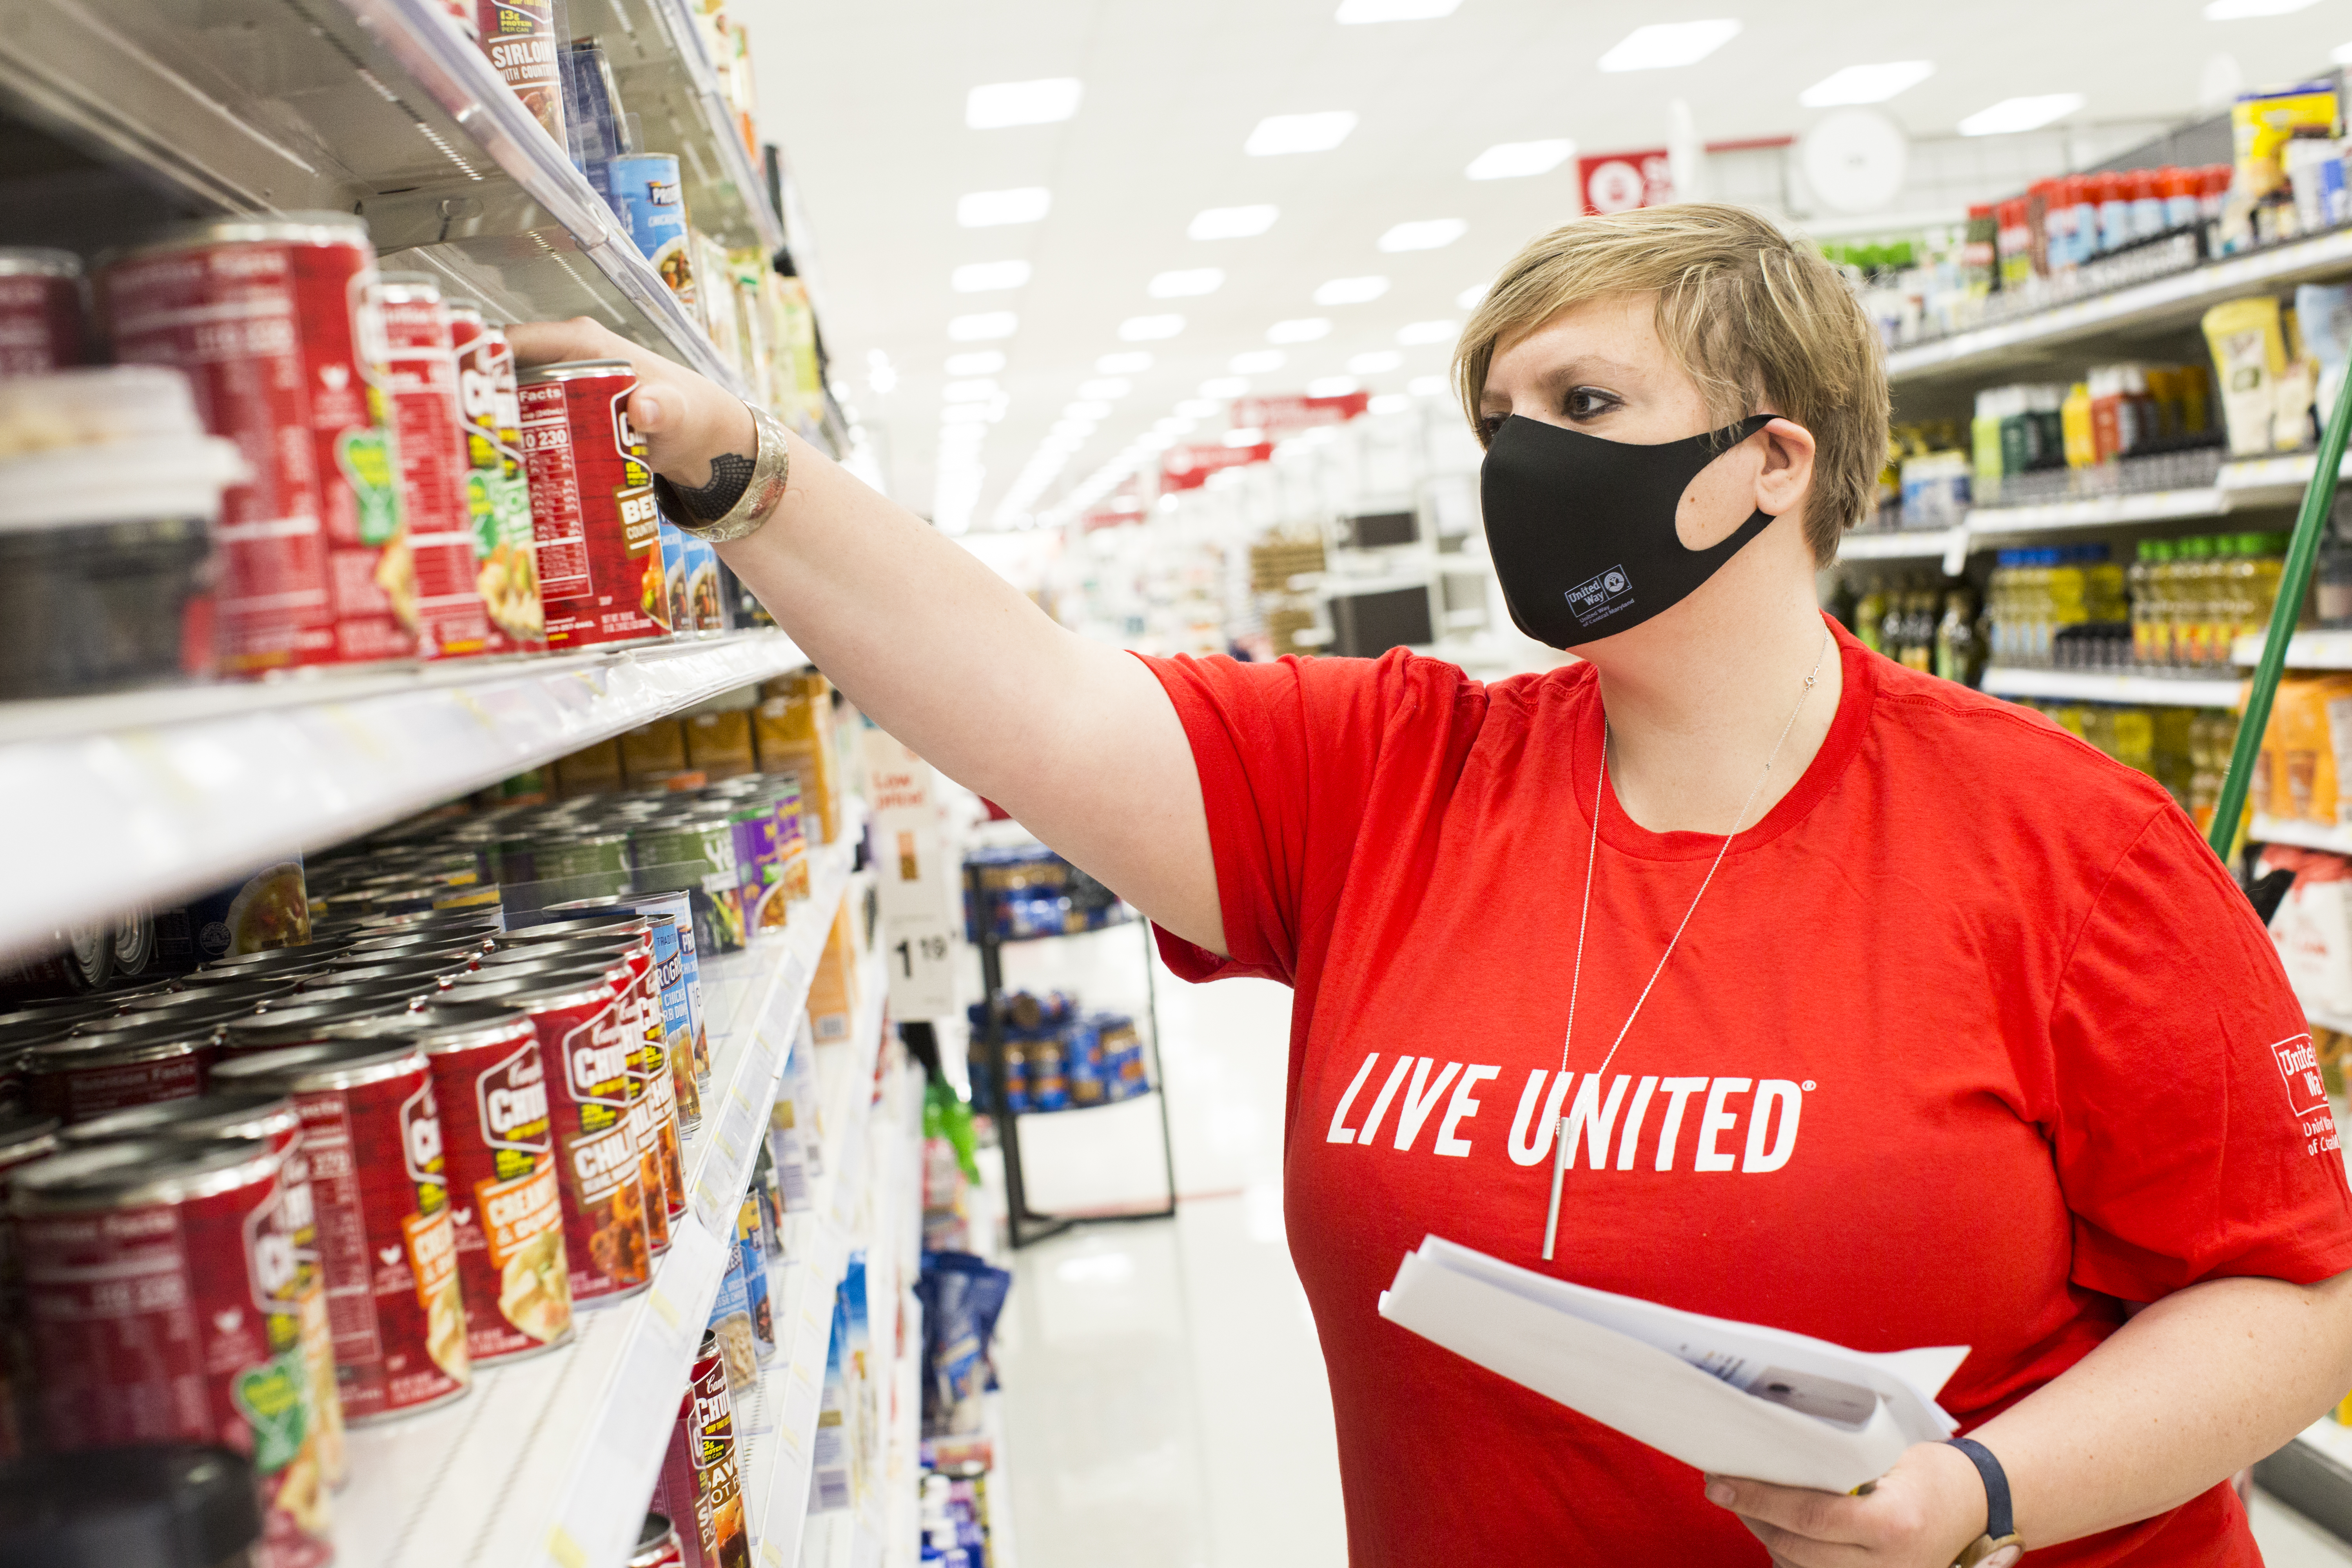 UWCM volunteer in  Live United shirt purchasing canned food at store